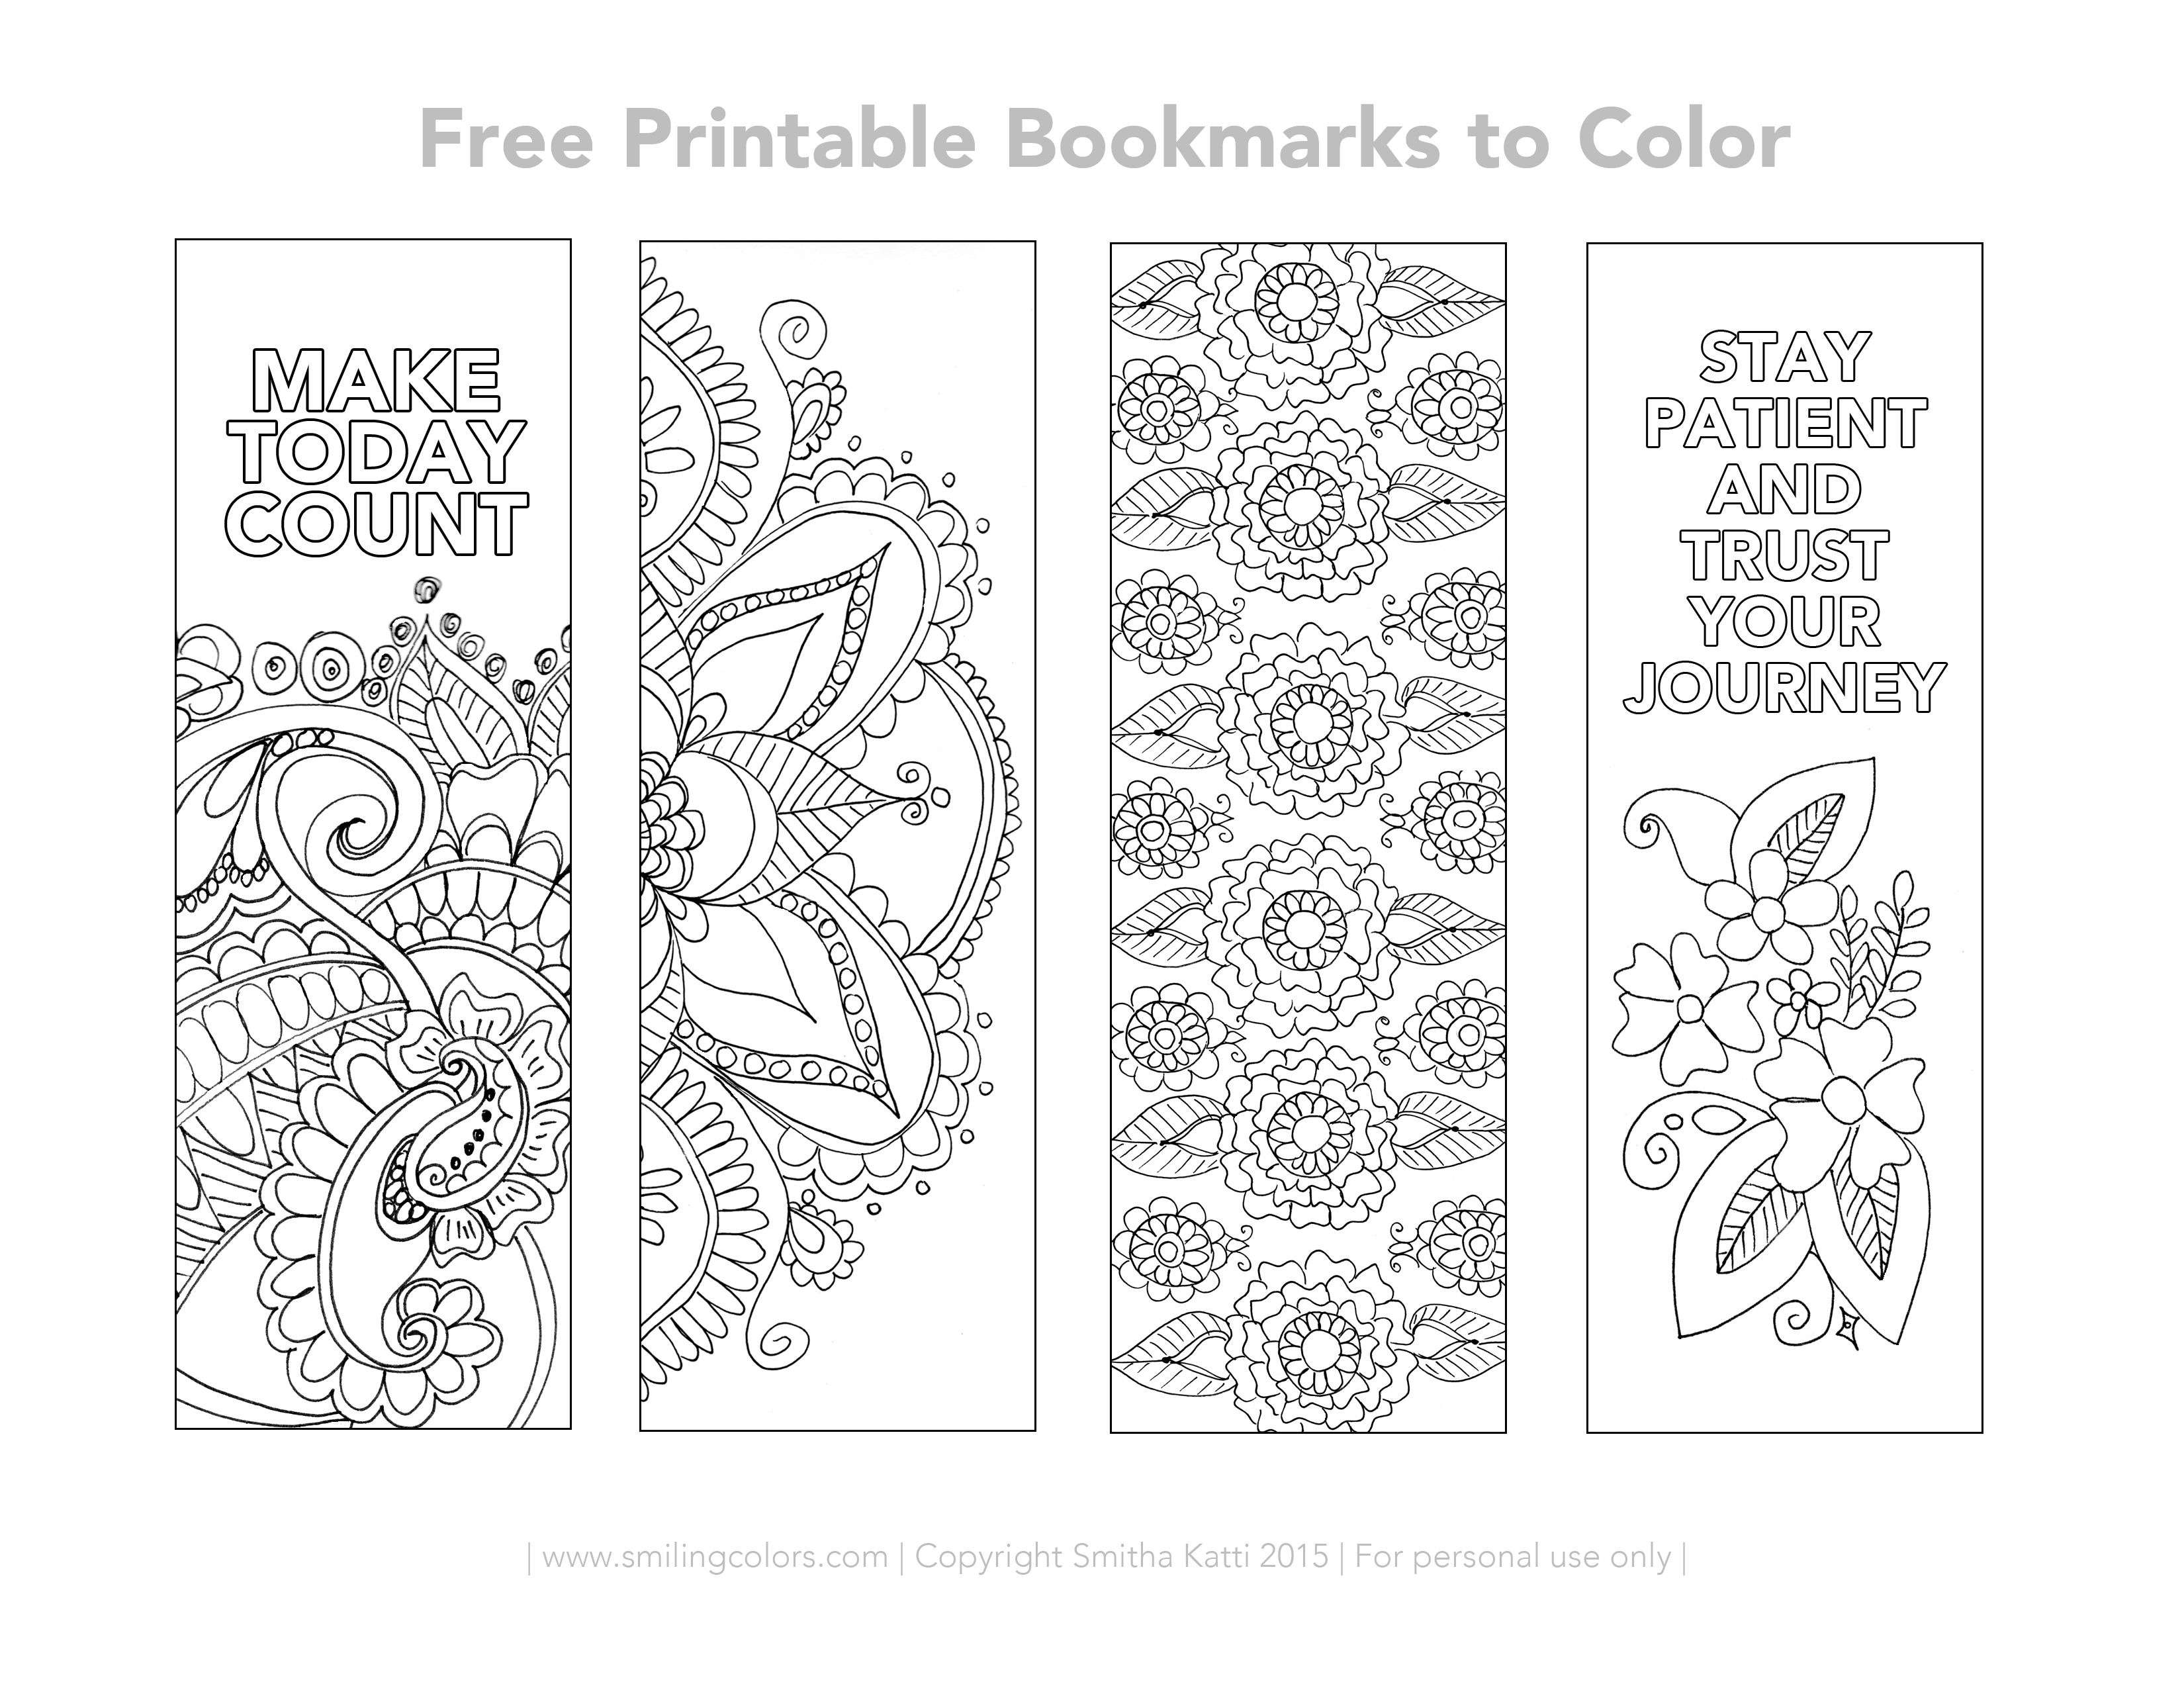 Free Printable Bookmarks To Color | Inspirational | Free Printable - Free Printable Christmas Bookmarks To Color